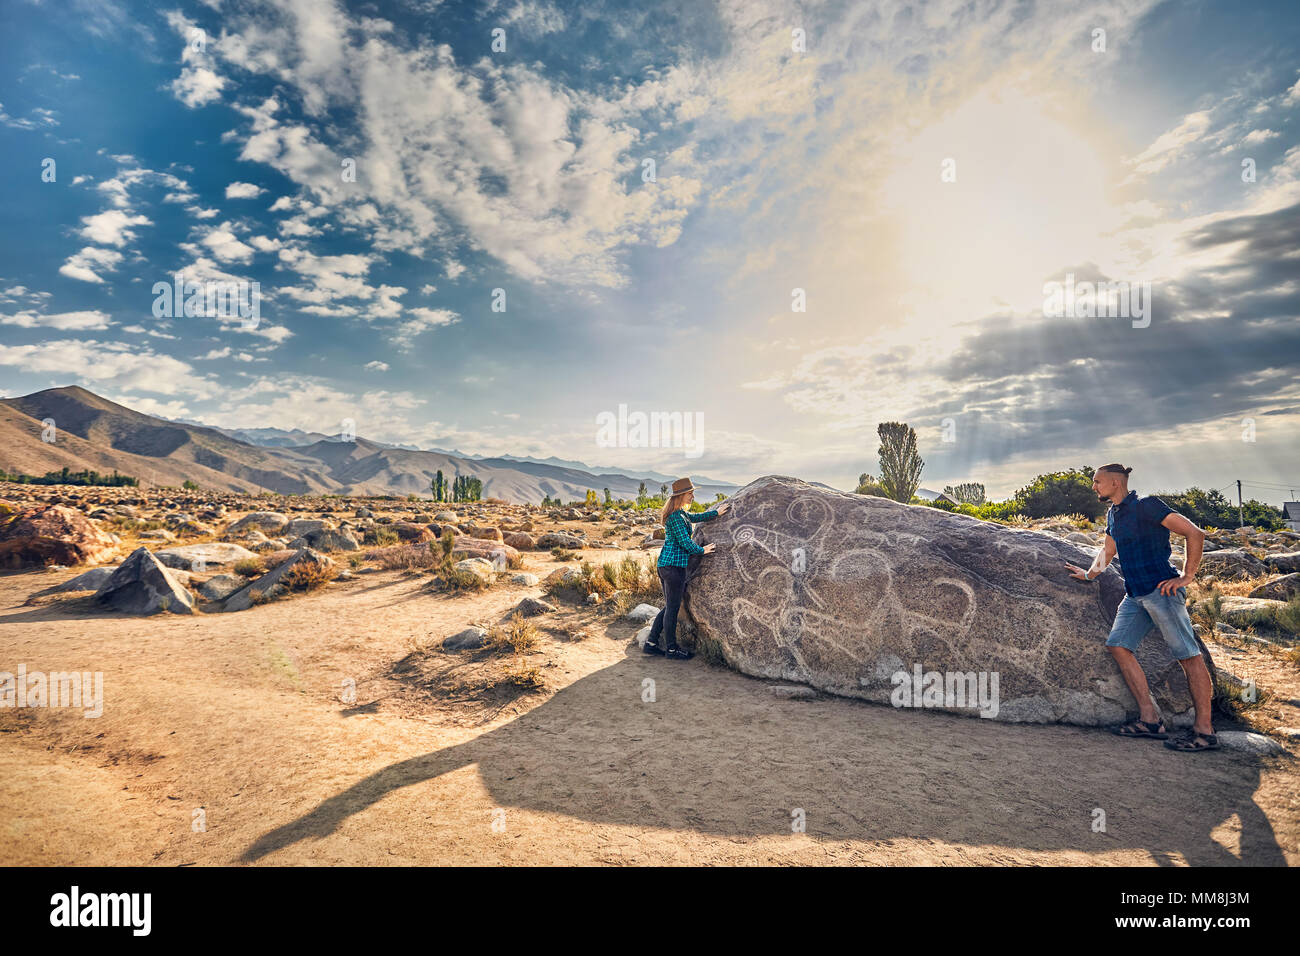 Couple in checkered shirt in the open air museum near stone with ancient petroglyph of goats at Kyrgyzstan - Stock Image